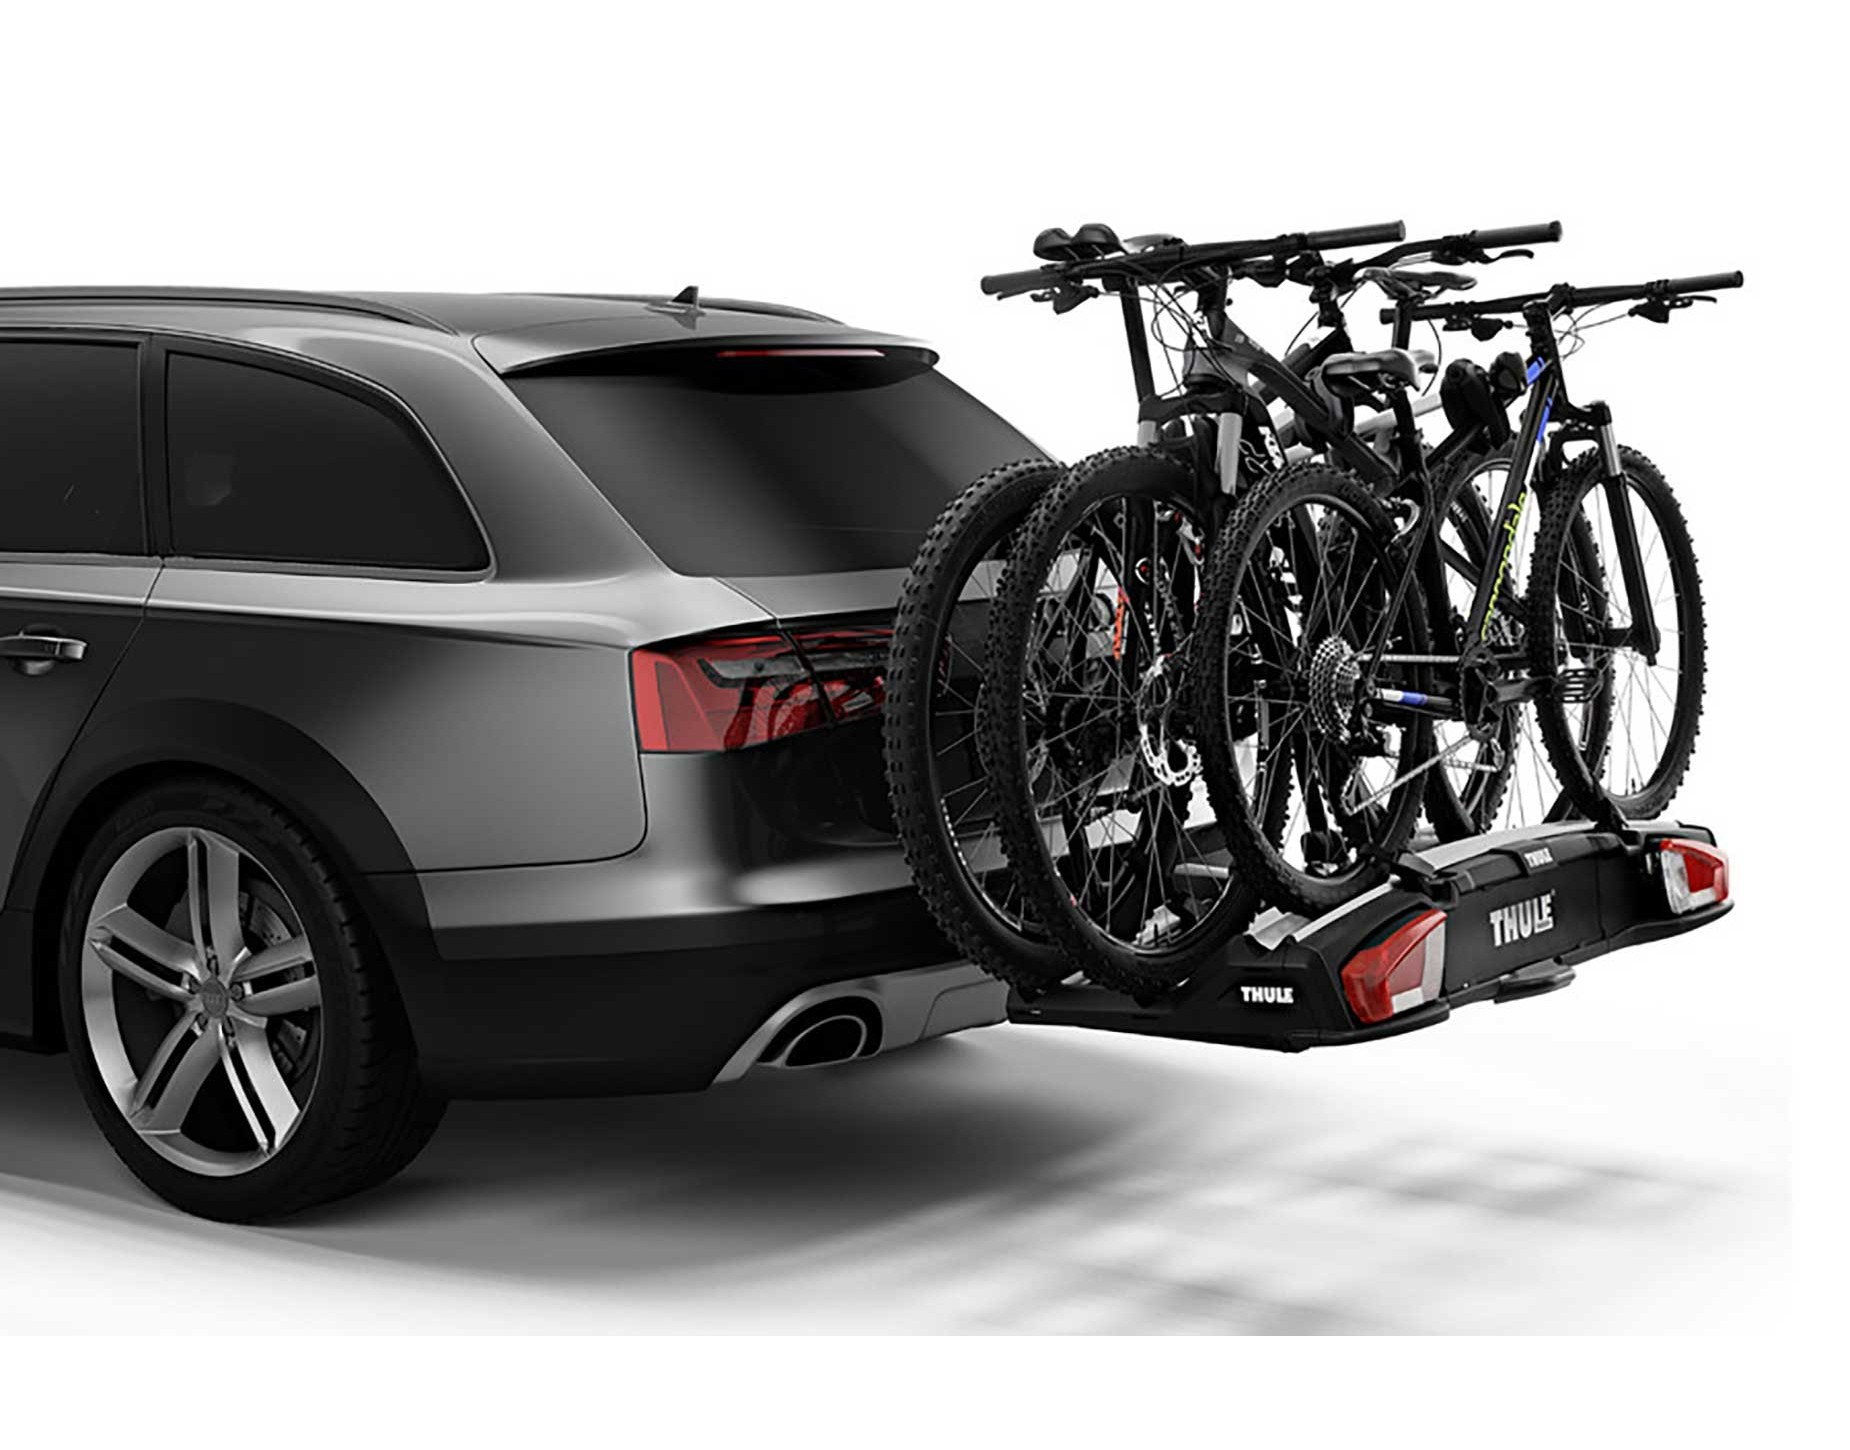 thule velospace xt 3 fahrradtr ger genau was du brauchst. Black Bedroom Furniture Sets. Home Design Ideas